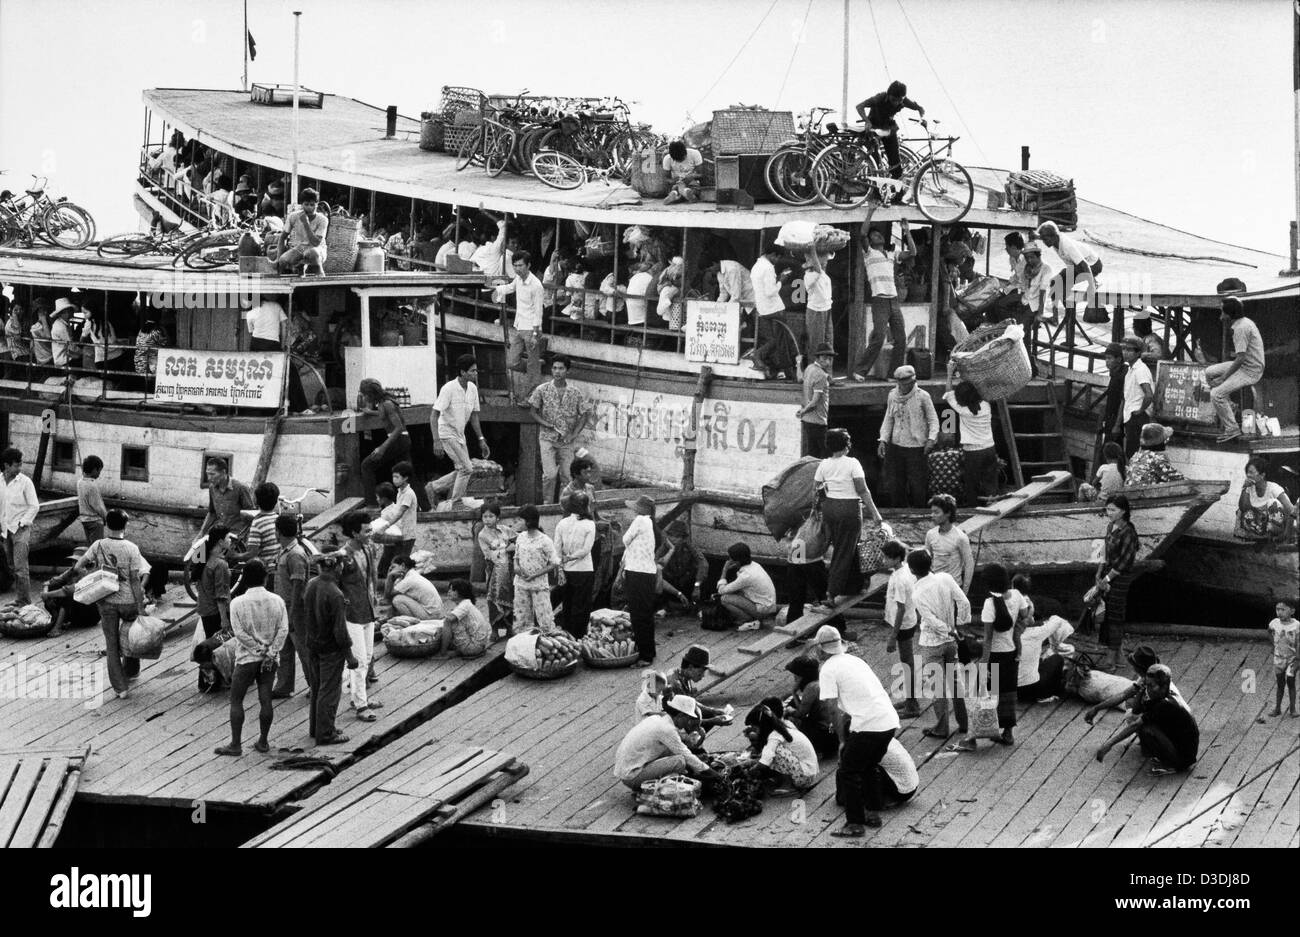 Cambodia: Passengers unload  and disembark from the ferry after crossing the Mekong river at Phnom Penh. - Stock Image